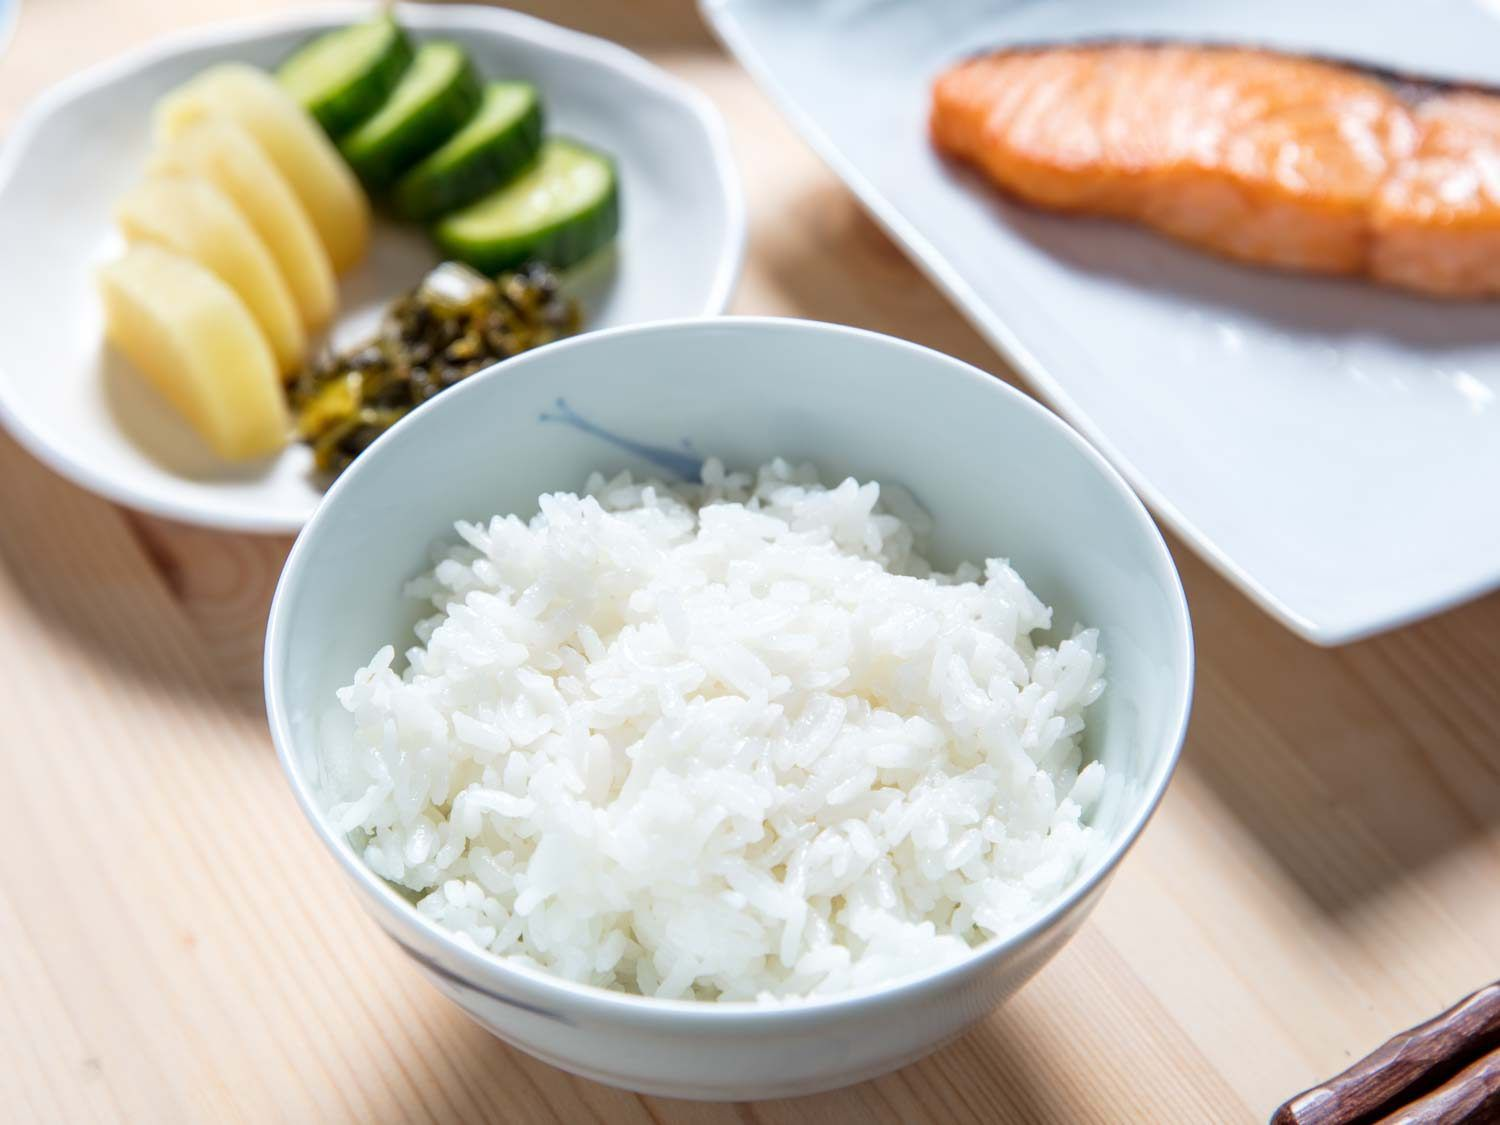 A ceramic bowl of white rice, with pickles and salted salmon in the background